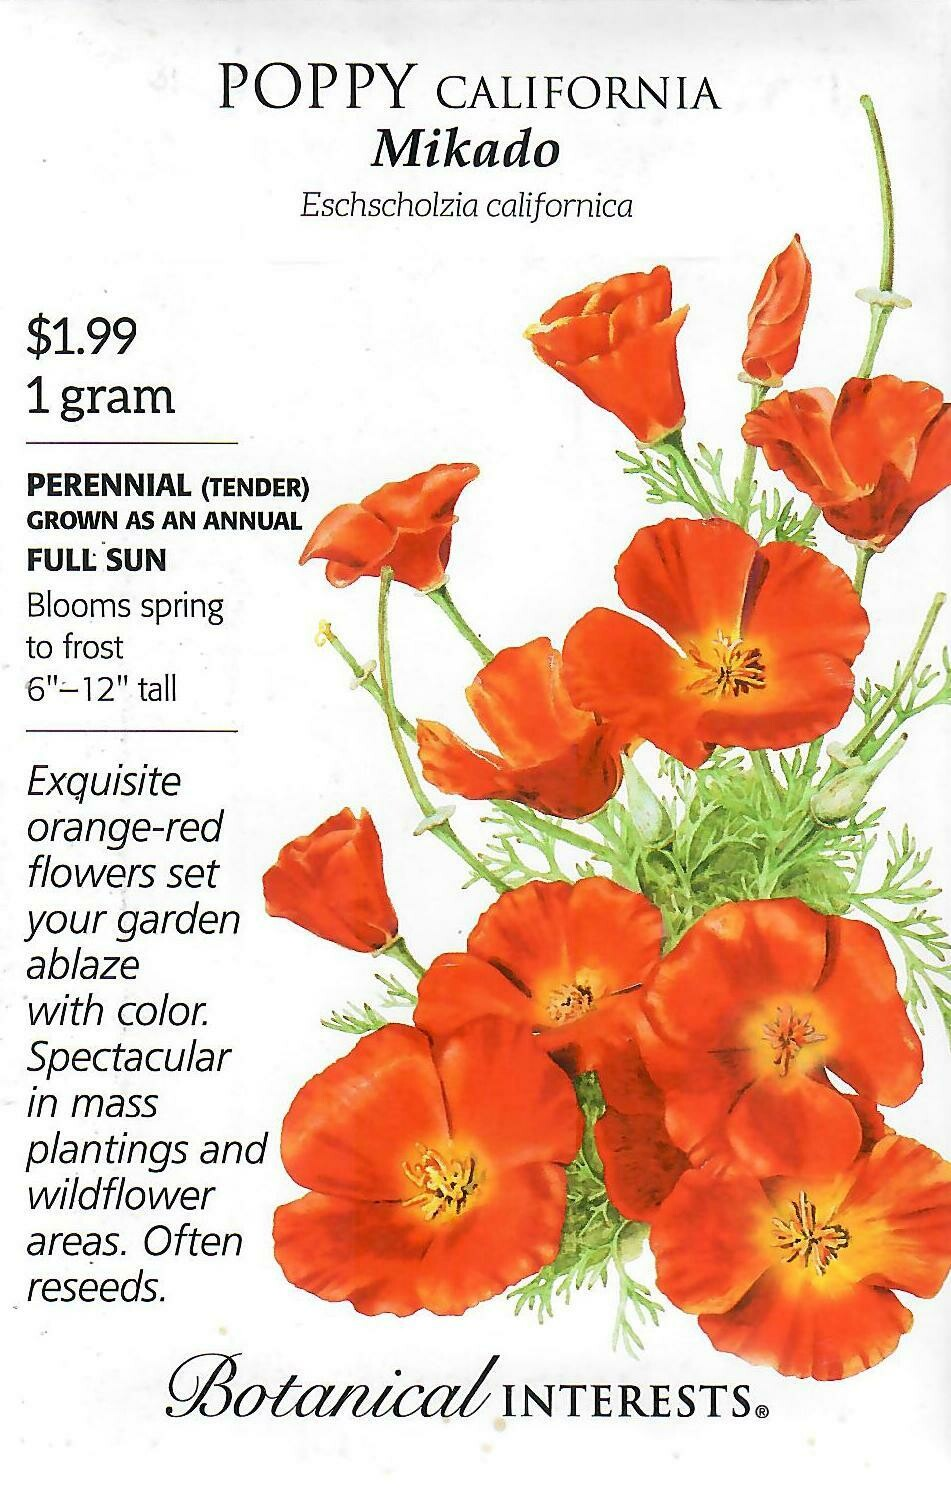 Poppy California Mikado Botanical Interests